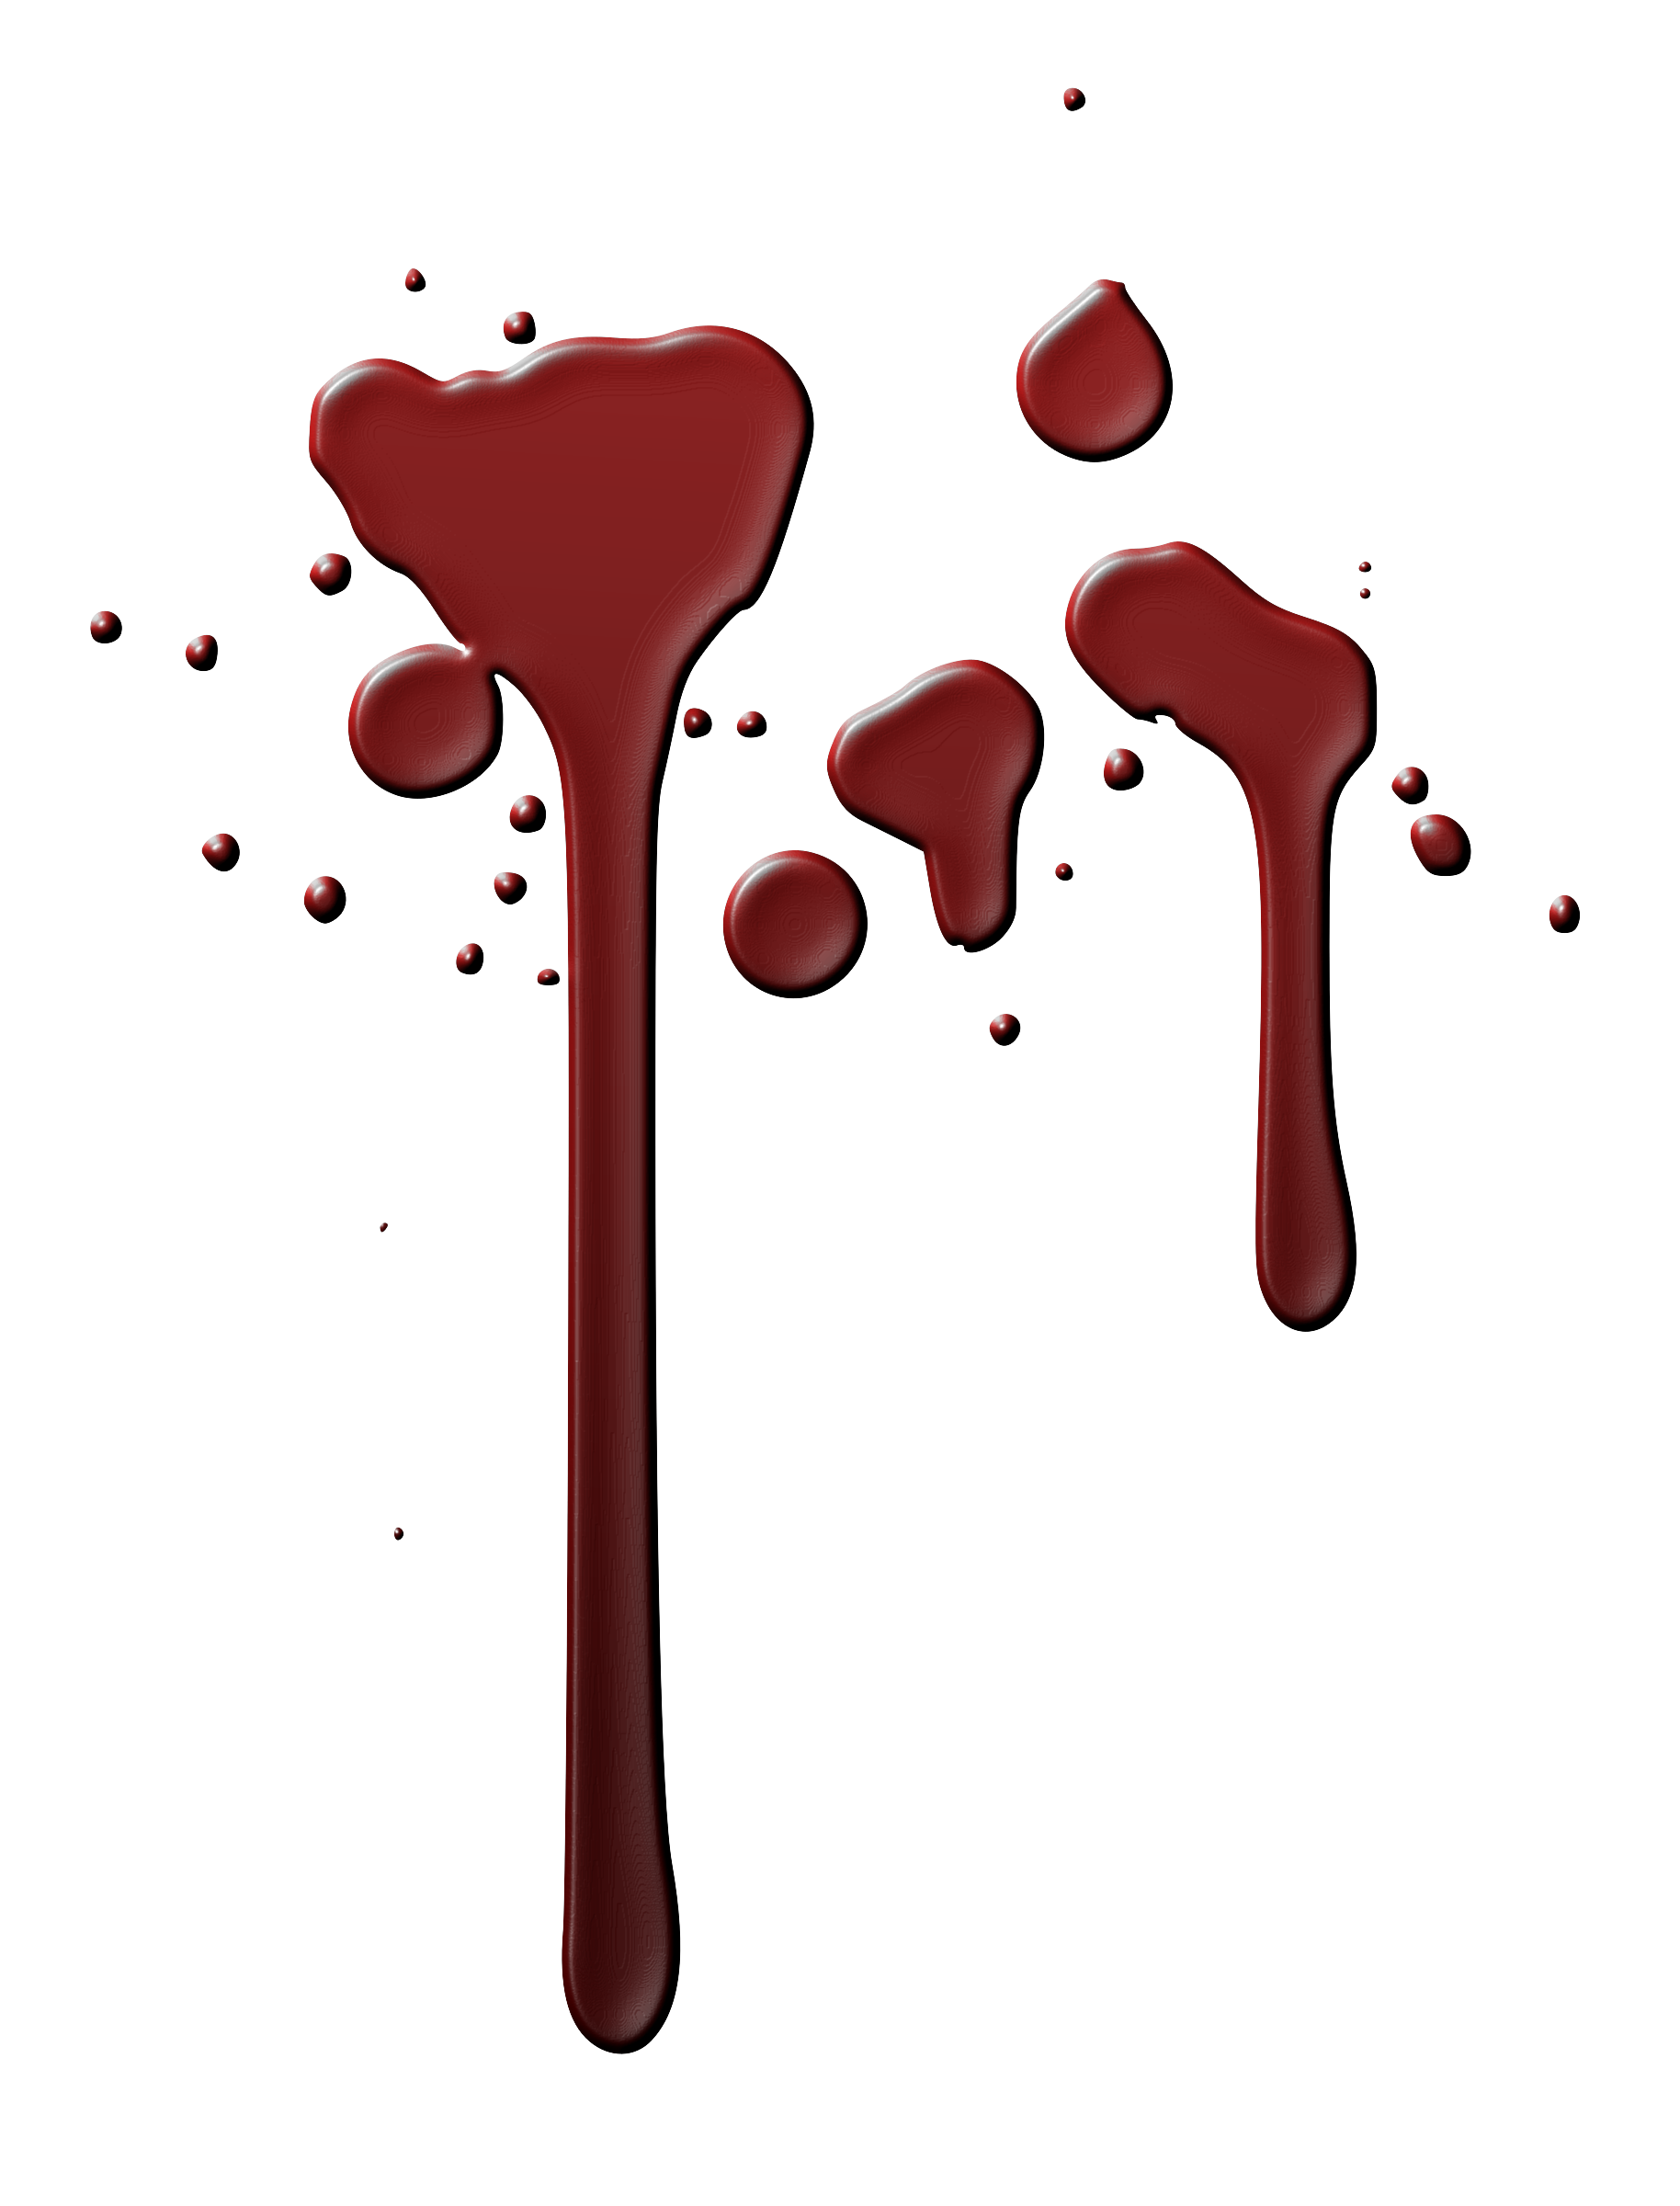 clipart blood